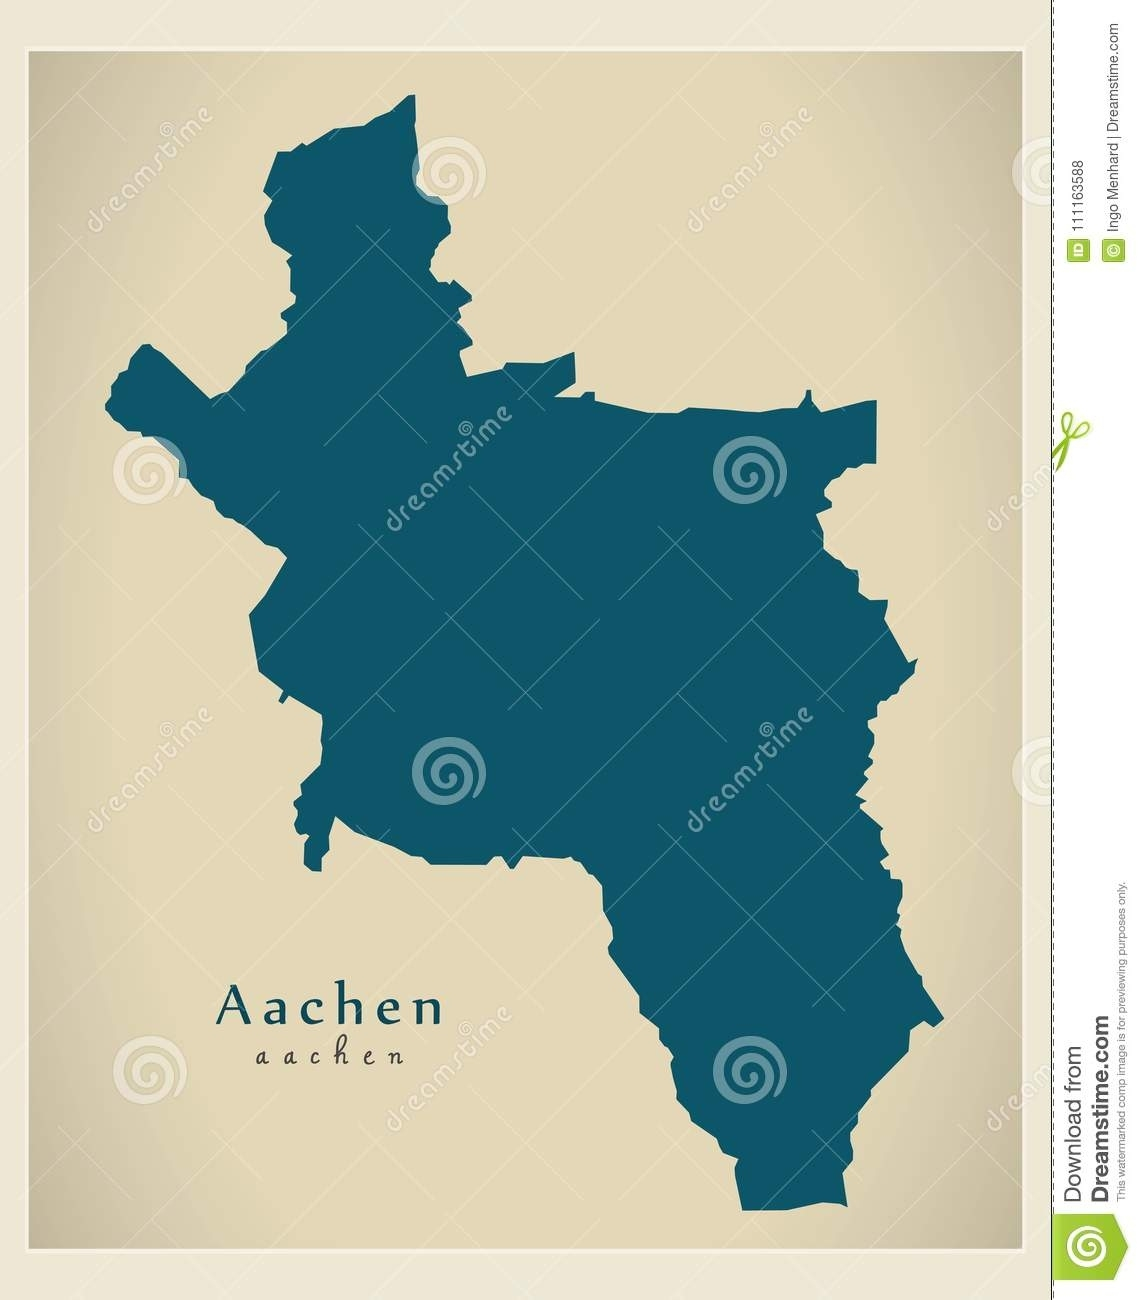 Modern Map - Aachen City Of Germany De Stock Vector - Illustration within Aachen Germany Map